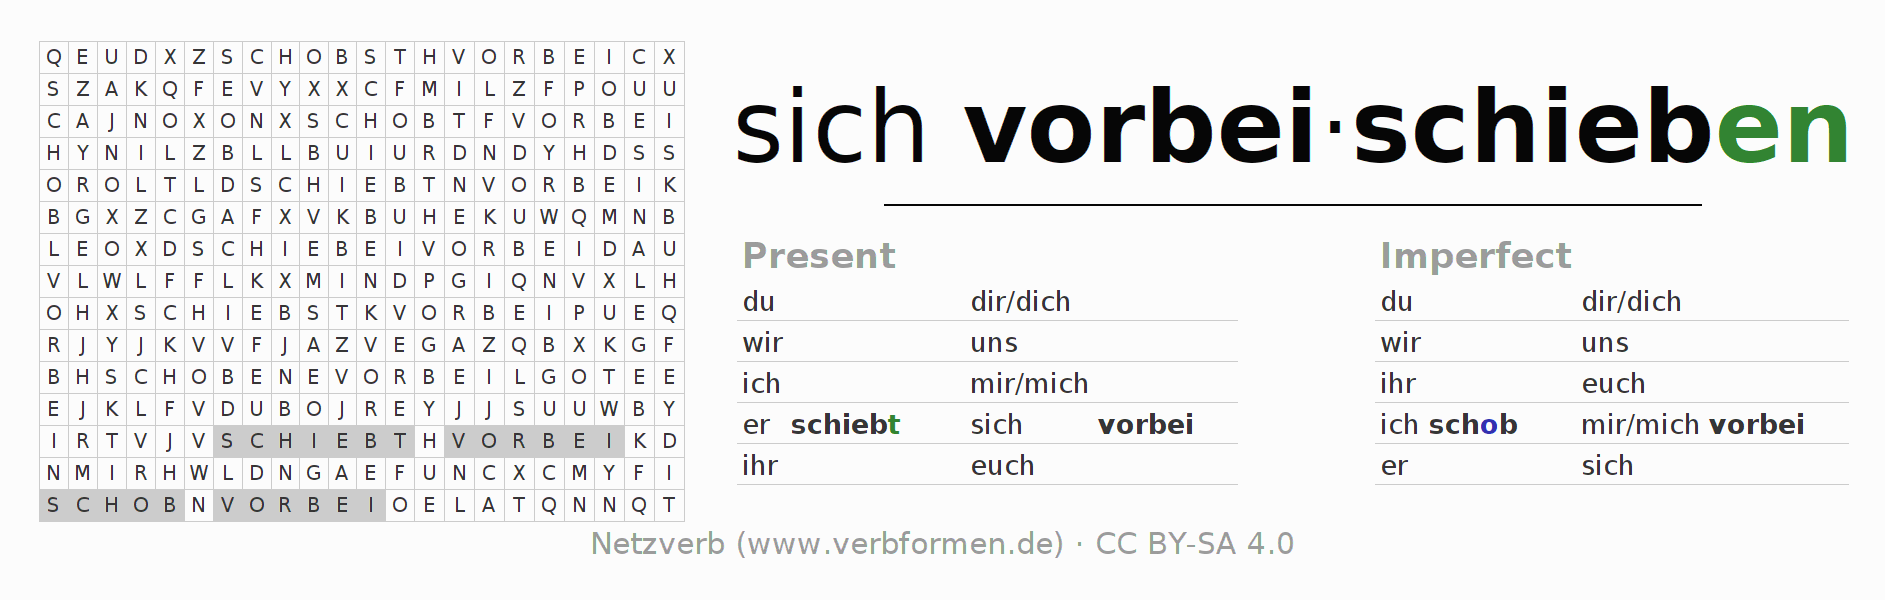 Word search puzzle for the conjugation of the verb sich vorbeischieben